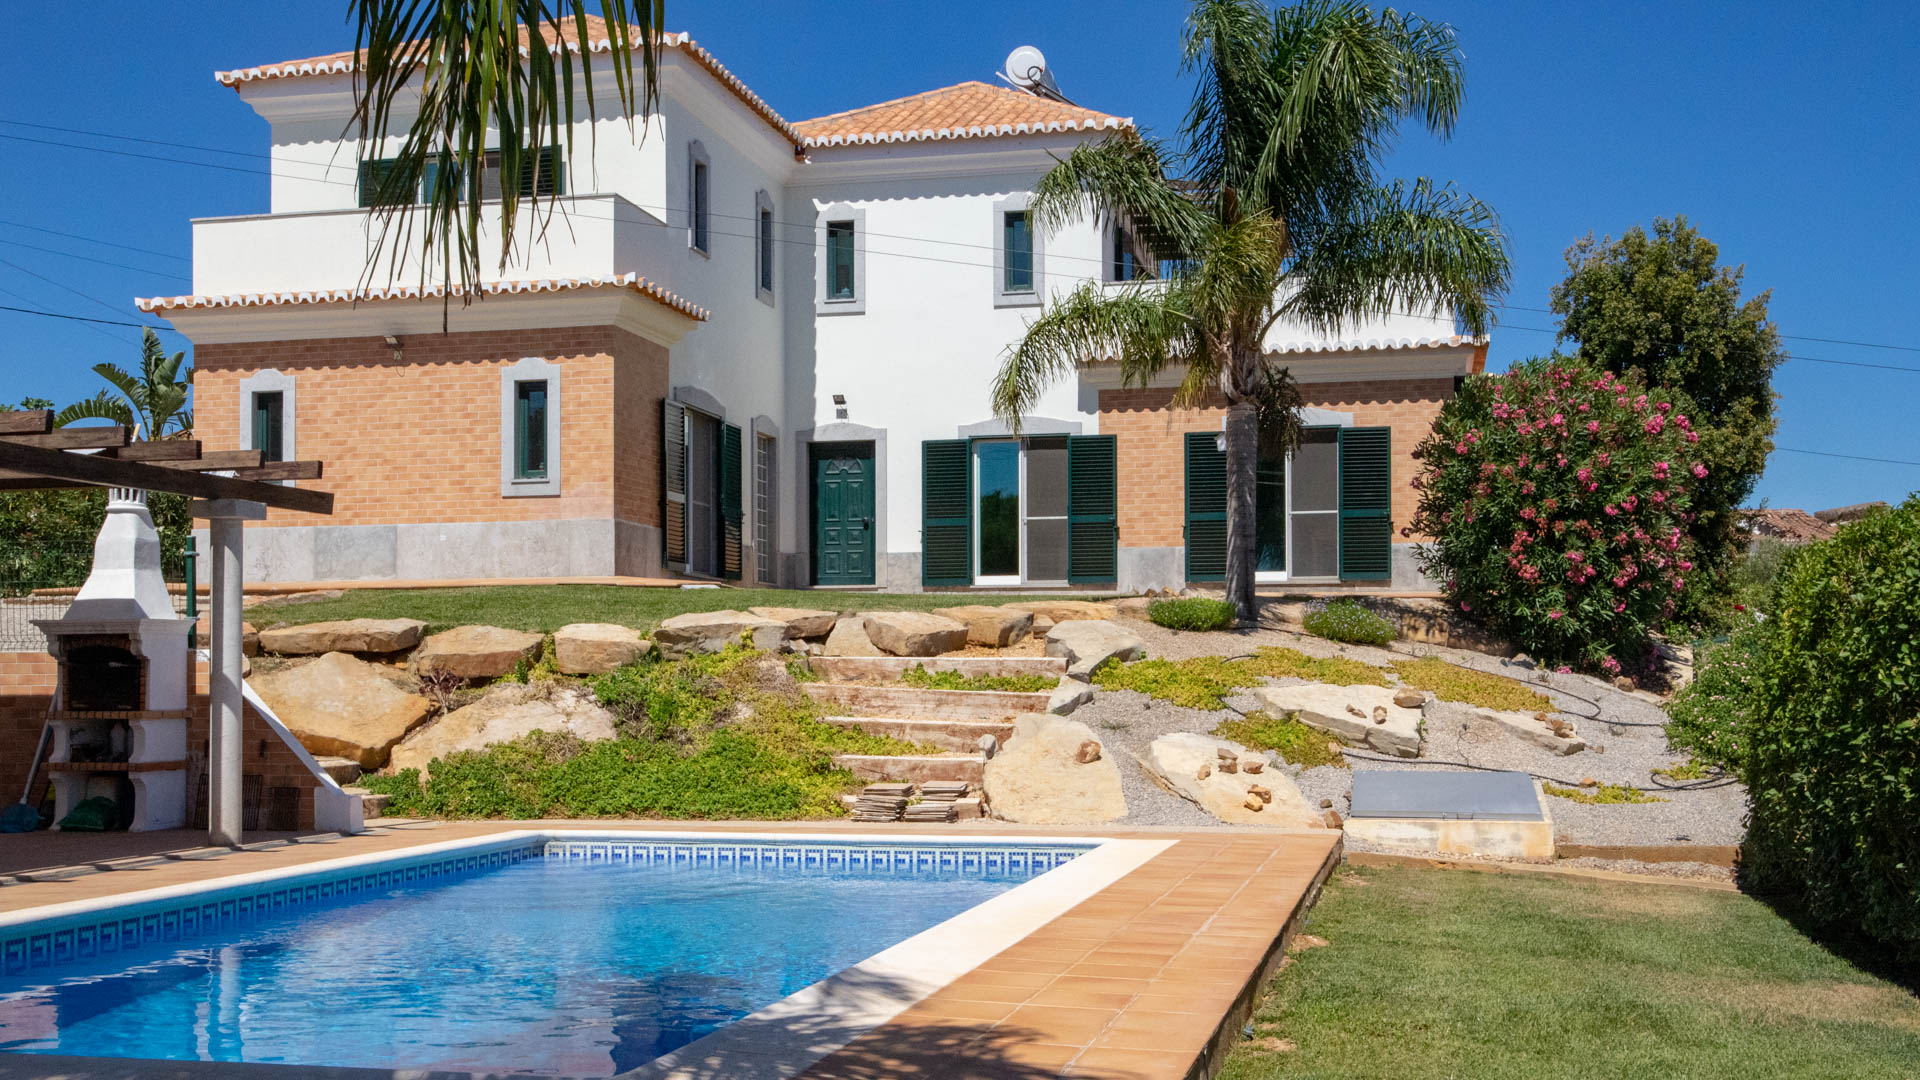 3-bedroom villa with heated pool, landscaped gardens and sea, country views in tranquil location near Tavira and the renowned Monte Rei Golf and Country Club | TV1508